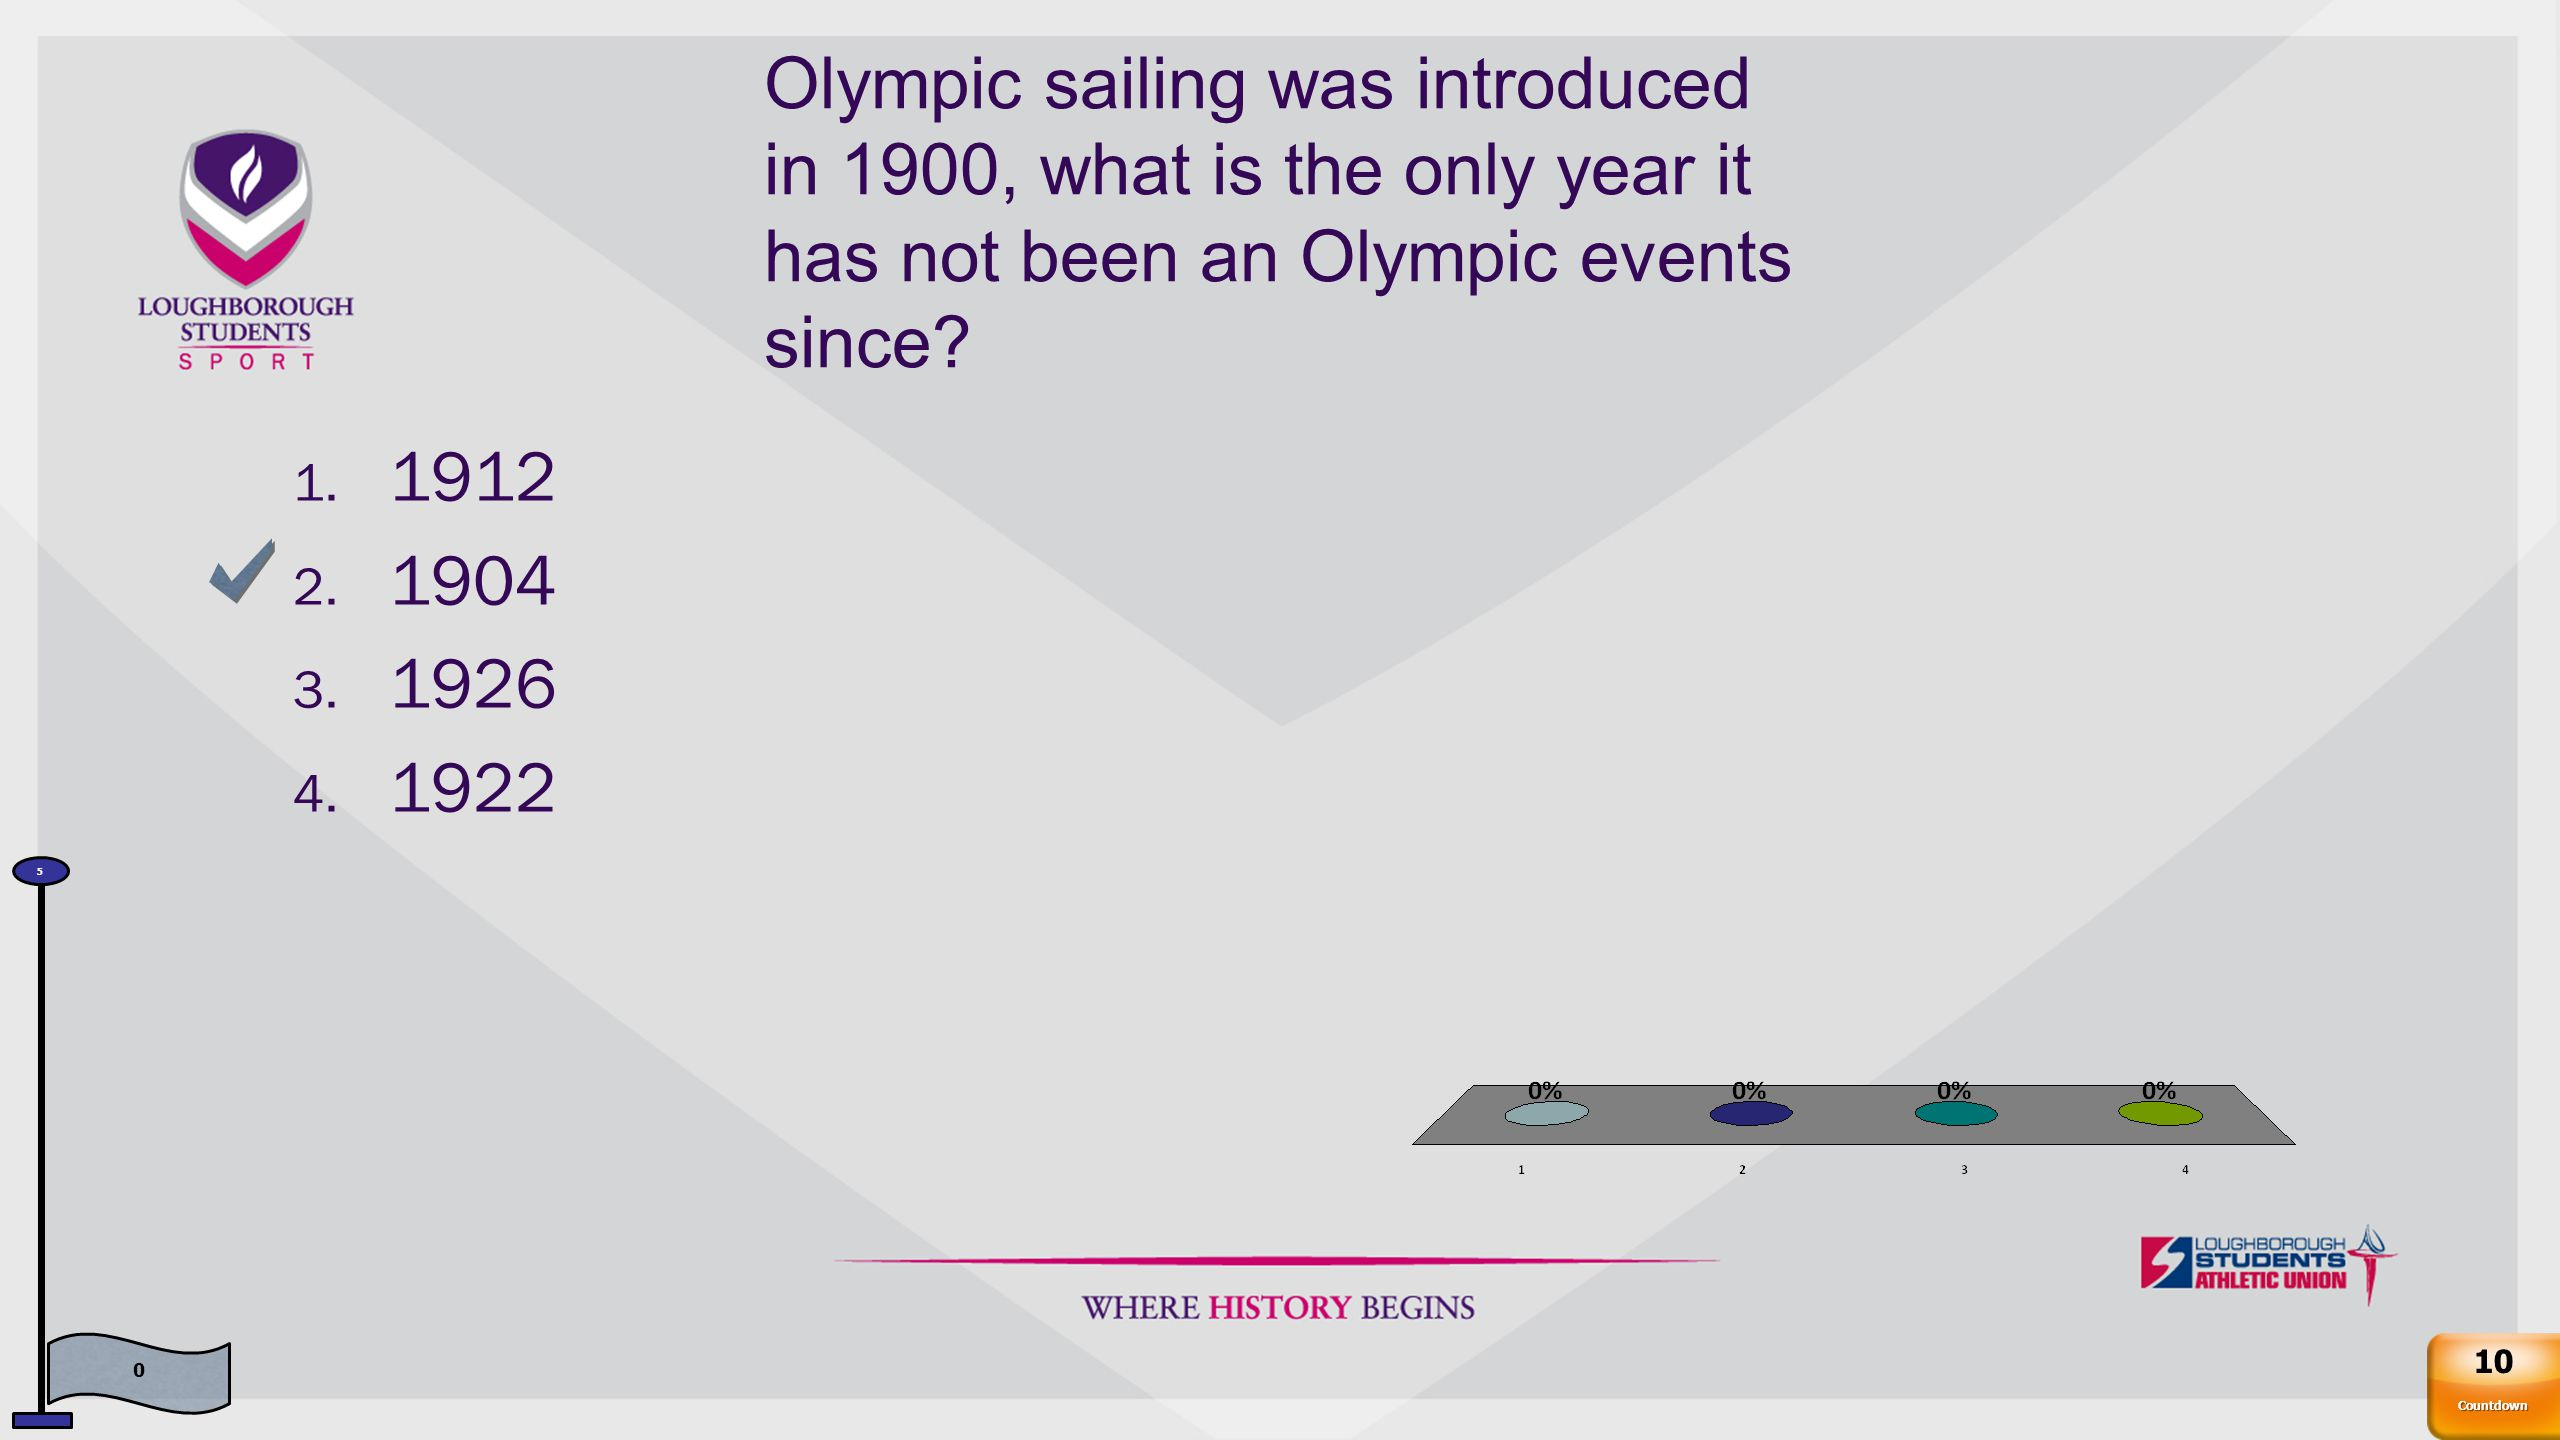 Olympic sailing was introduced in 1900, what is the only year it has not been an Olympic events since.